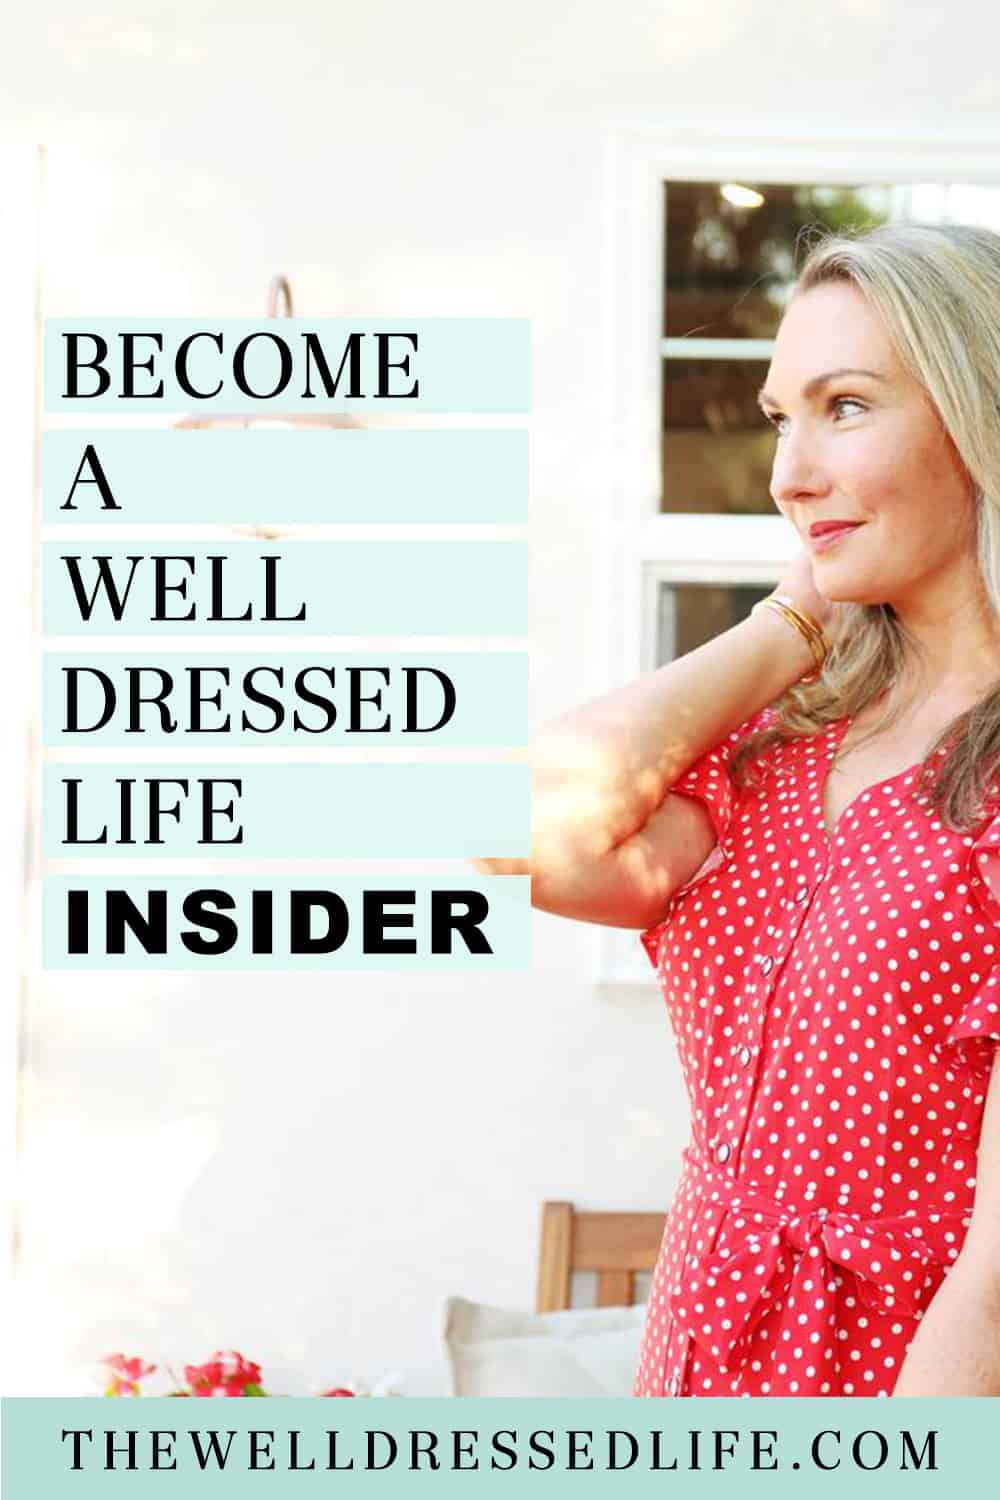 Join the Well Dressed Life INSIDER Waitlist TODAY